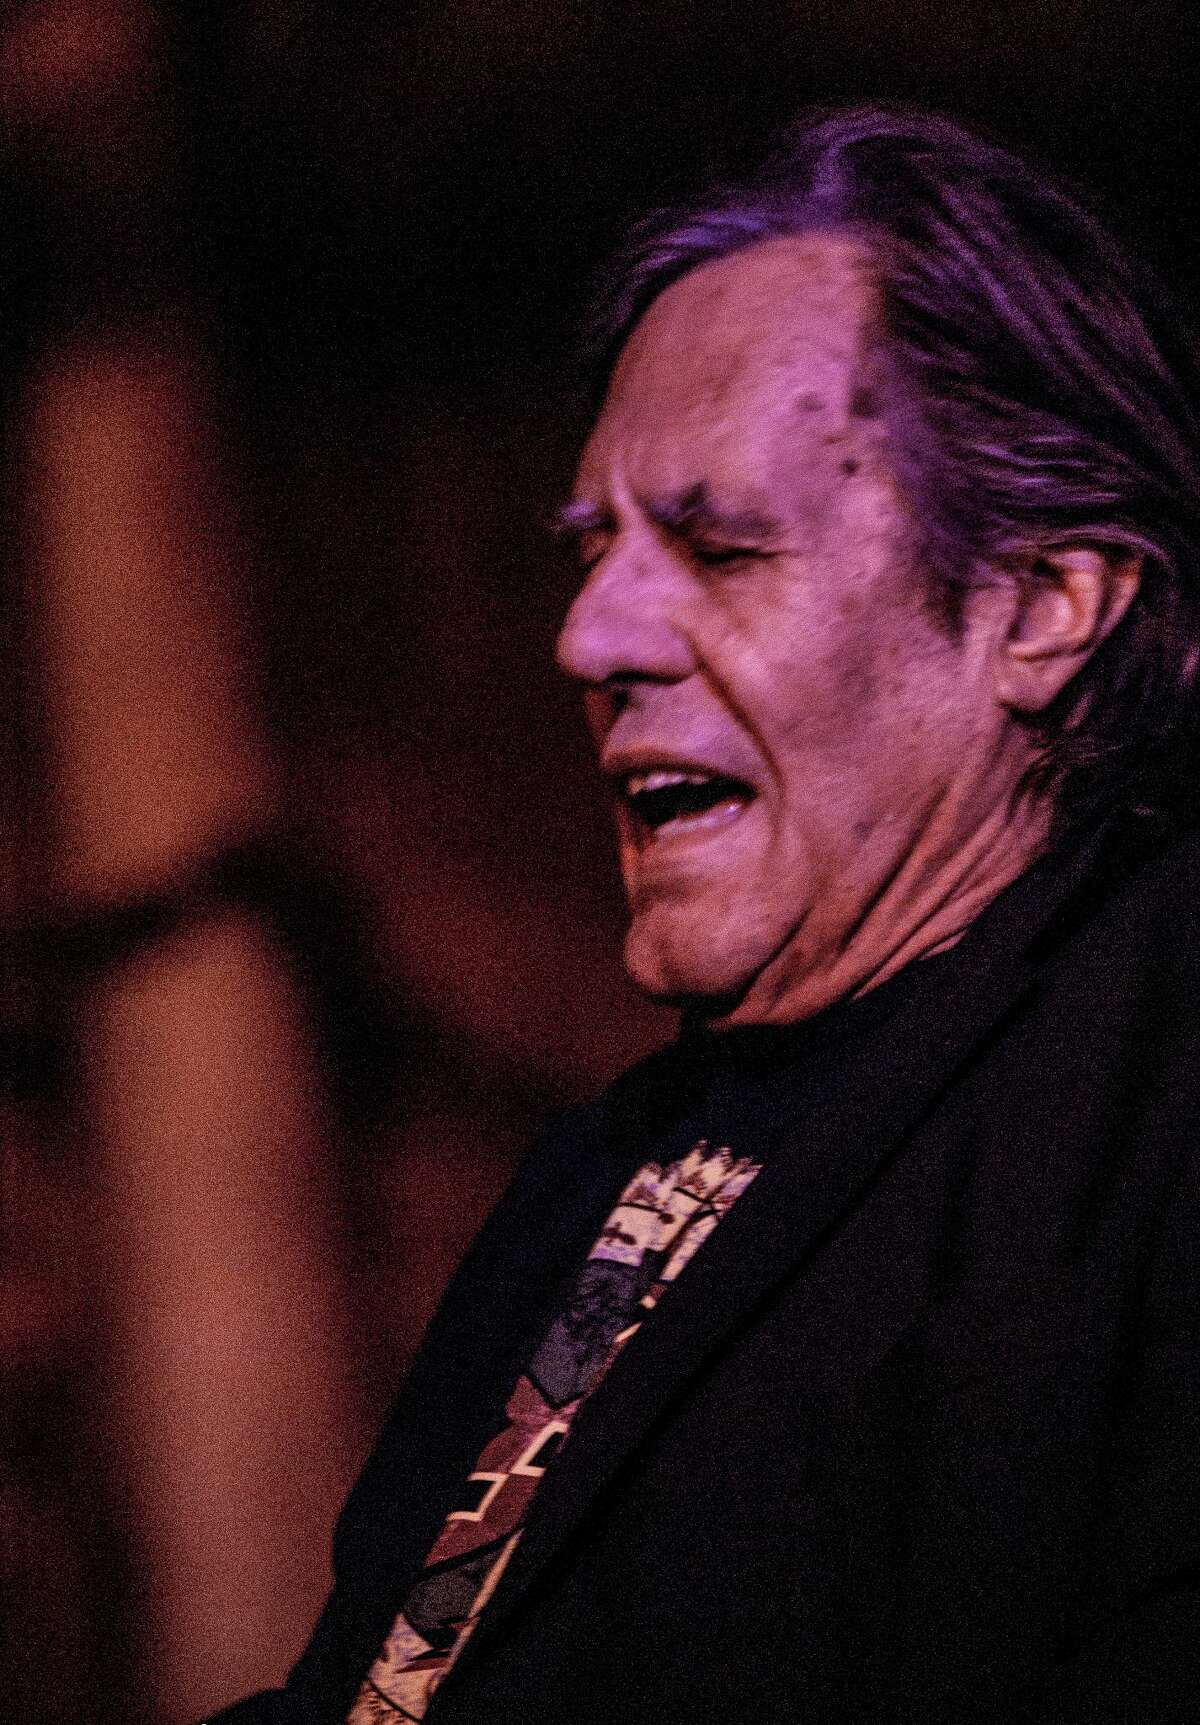 George Frayne IV, aka Commander Cody, performing with the band Commander Cody and His Lost Planet Airmen at The Hangar on the Hudson in Troy in 2017. He founded the group in 1967 and led different versions of it for the rest of his life while also pursuing a successful career as a visual artist. A resident of Saratoga Springs since the mid-1990s, Frayne died Sunday, Sept. 26, 2021, at age 77.